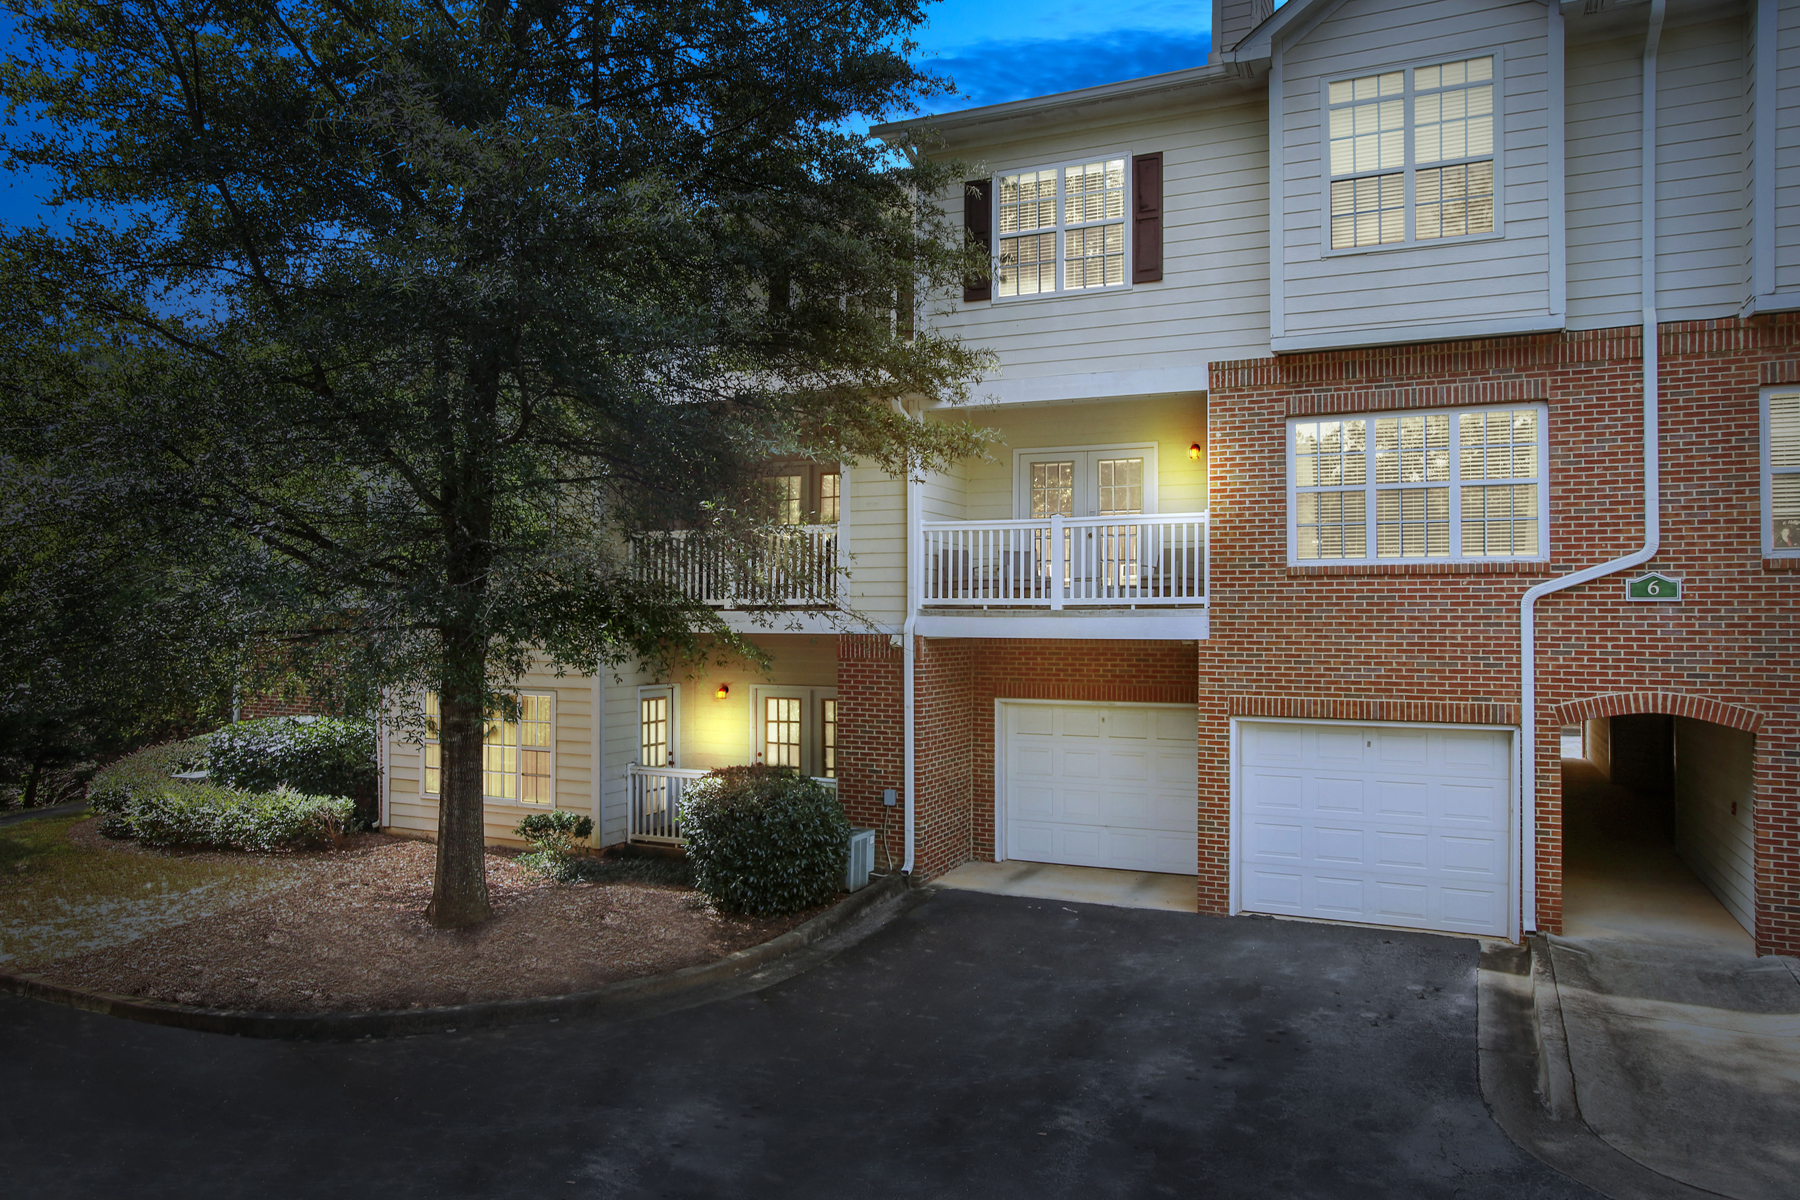 Townhouse for Sale at Unparalleled Location For Unbeatable Price 608 Spring Heights Ln Smyrna, Georgia 30080 United States